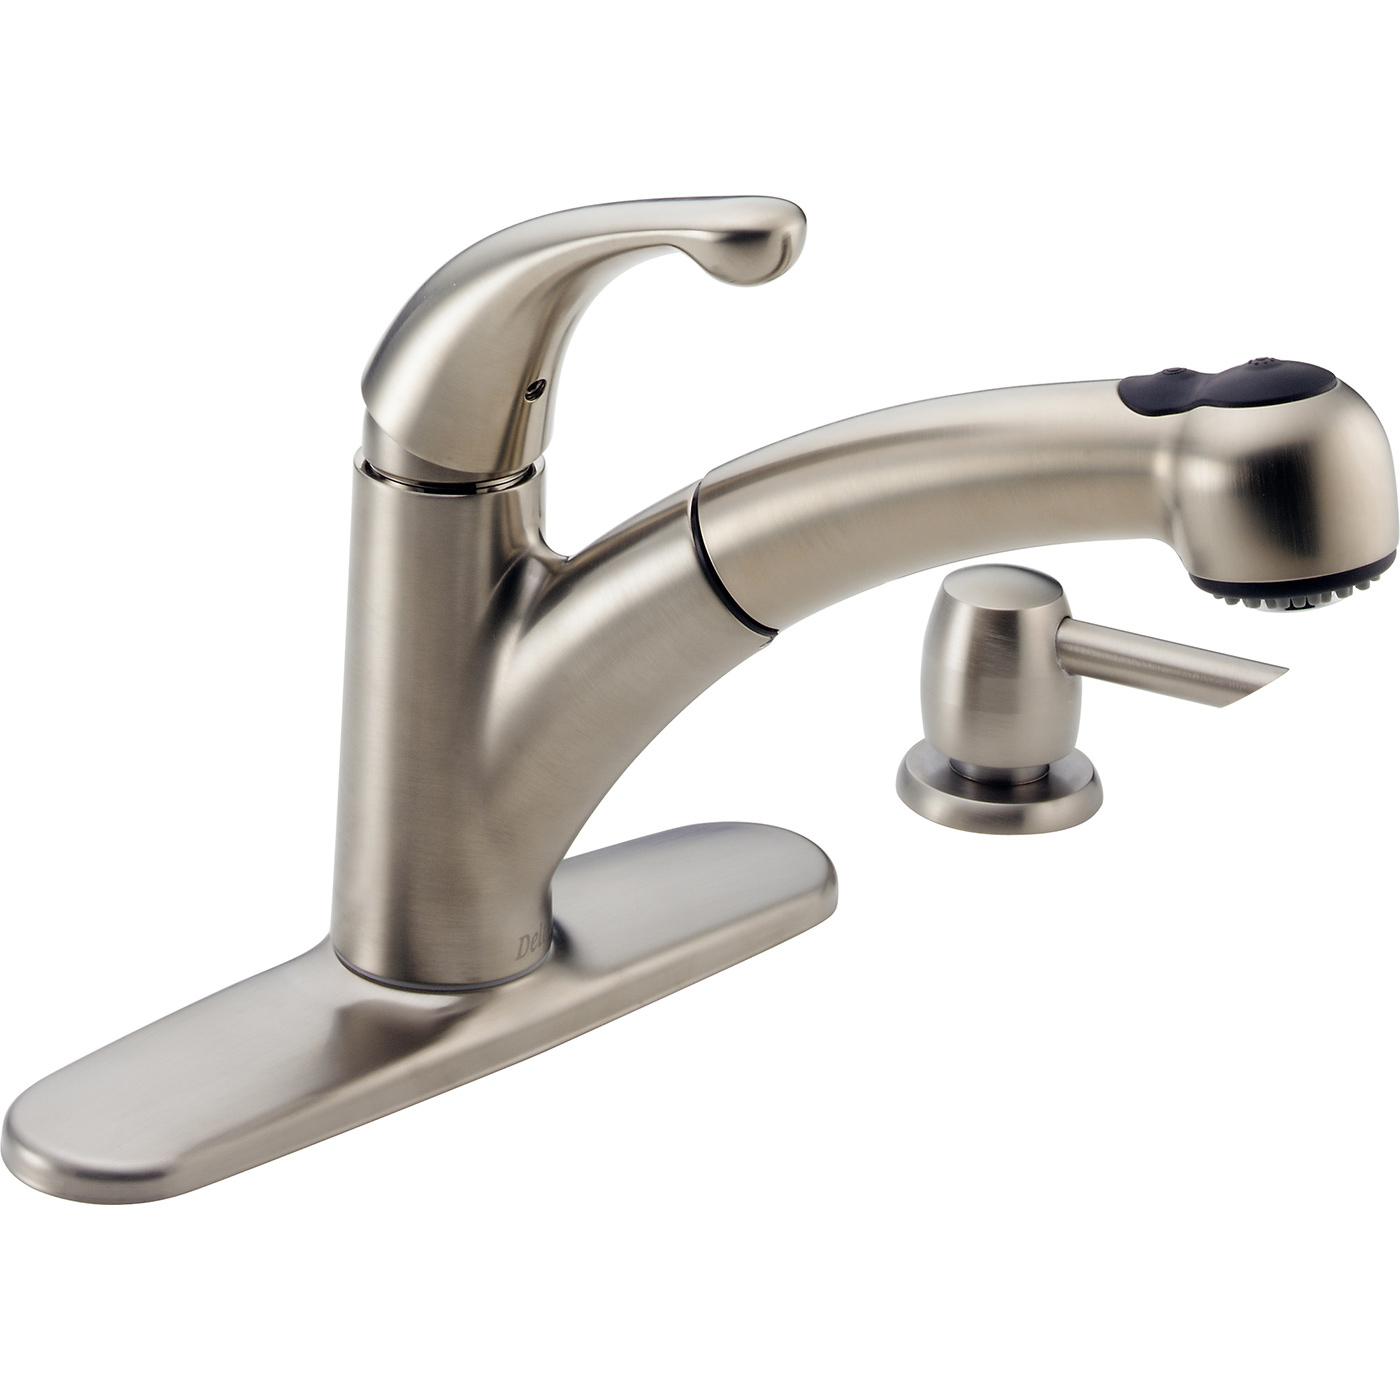 Bath4All - Delta 467-sd-dst Palo Pull-Out Kitchen Faucet with Soap ...